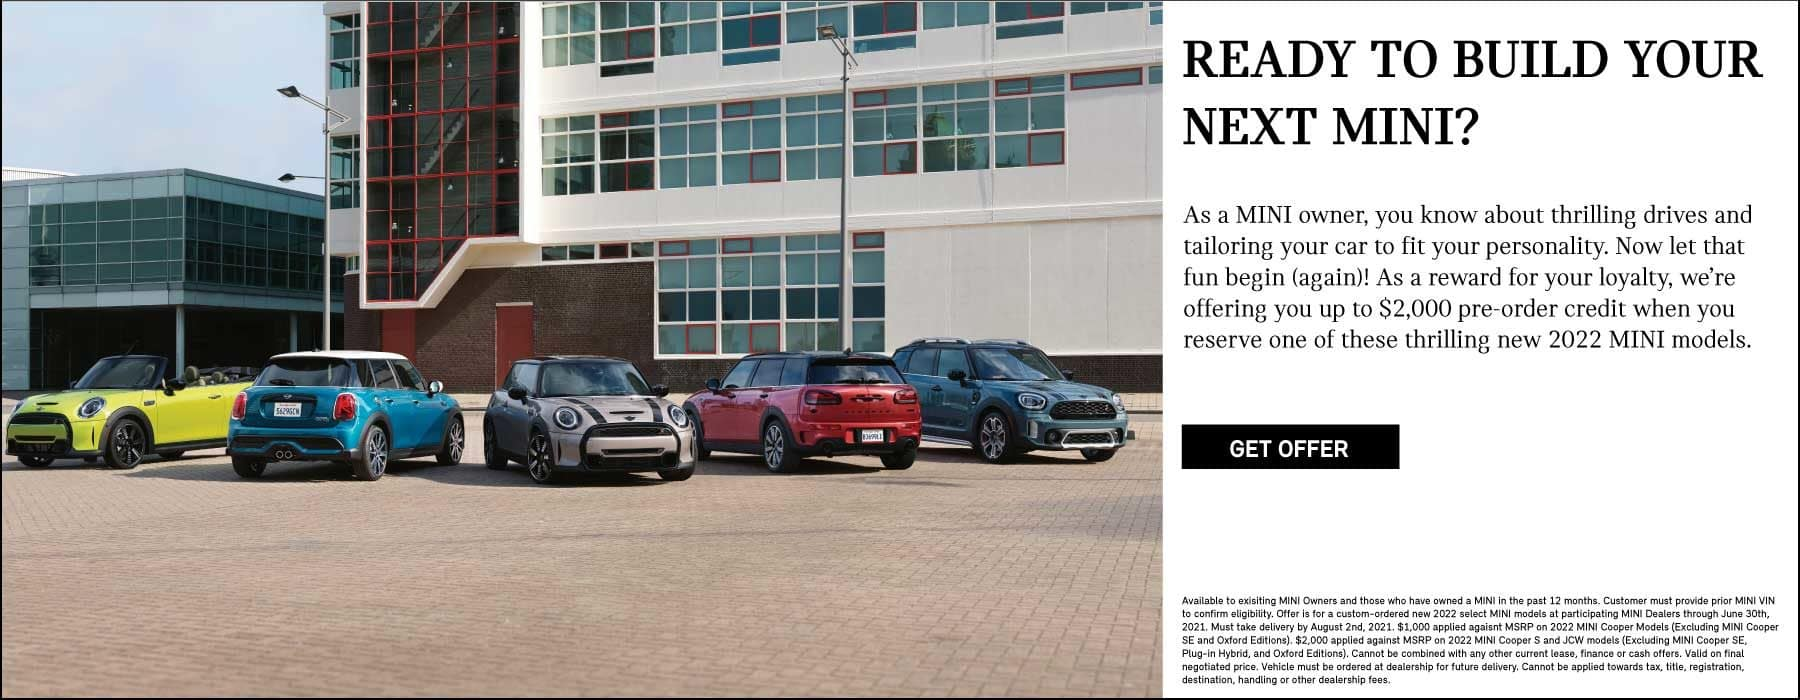 Reay for your next MINI? Get deal with MINI Loyalty.